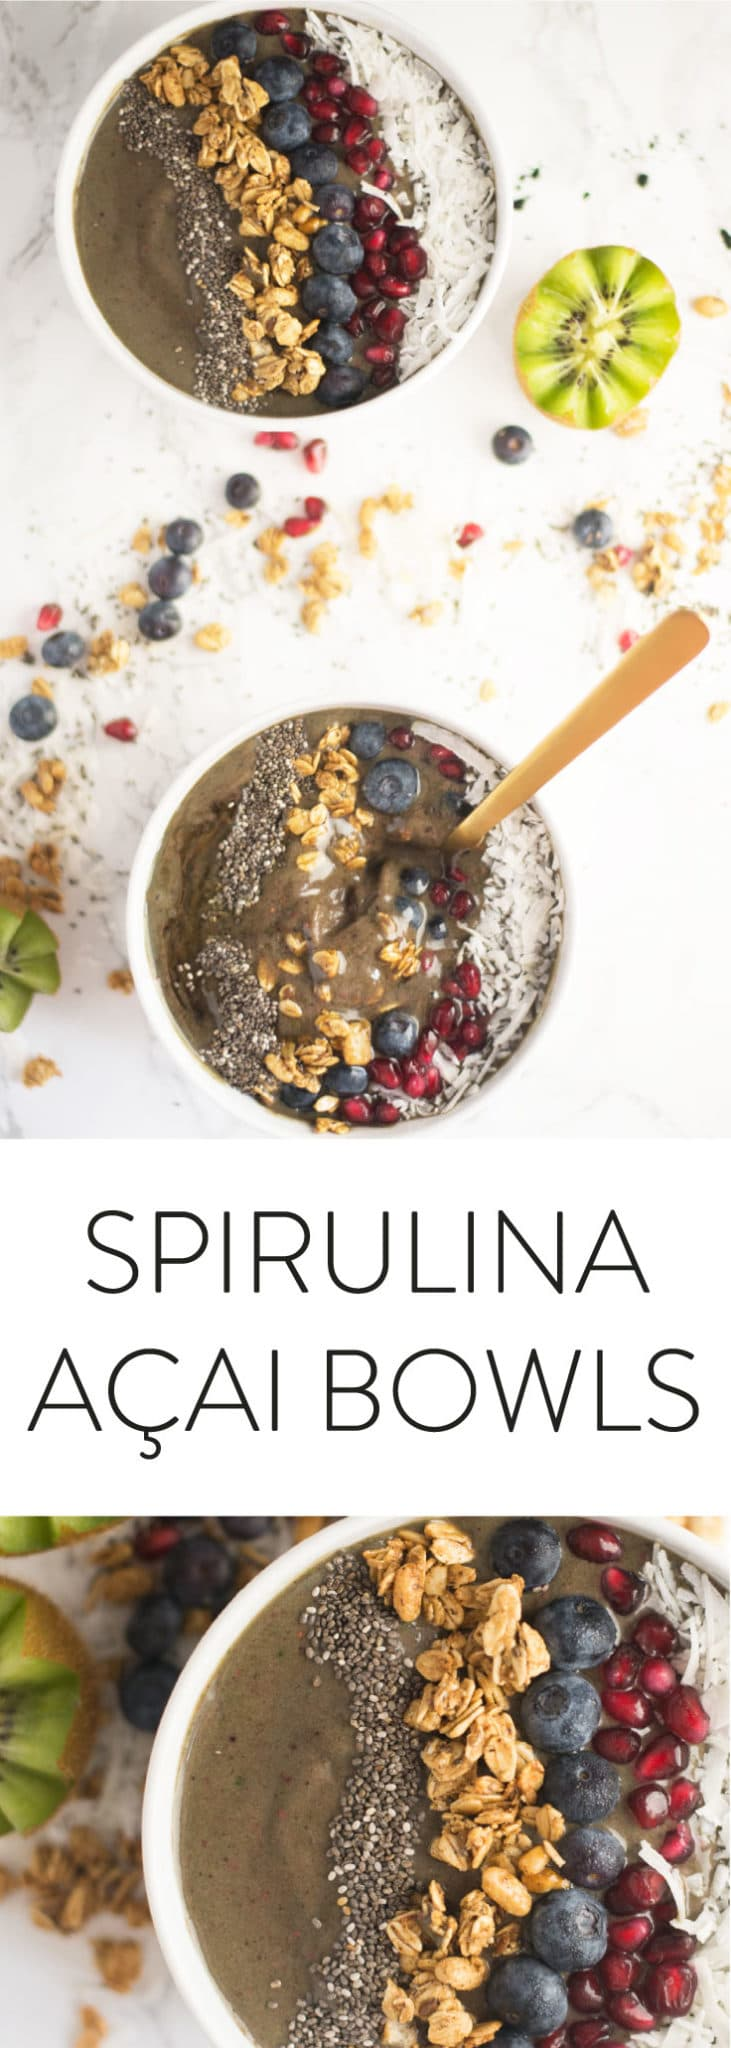 Spirulina Acai Bowl -- Whip up this smoothie bowl in a matter of minutes! Packed with superfoods and detoxifying ingredients like acai powder, spirulina, fresh fruit, and healthy toppings,  this vegan and gluten-free breakfast is the BEST WAY to start your morning! #vegan #vegetarian #healthy #cleaneating #breakfast #smoothiebowl #detox | mindfulavocado